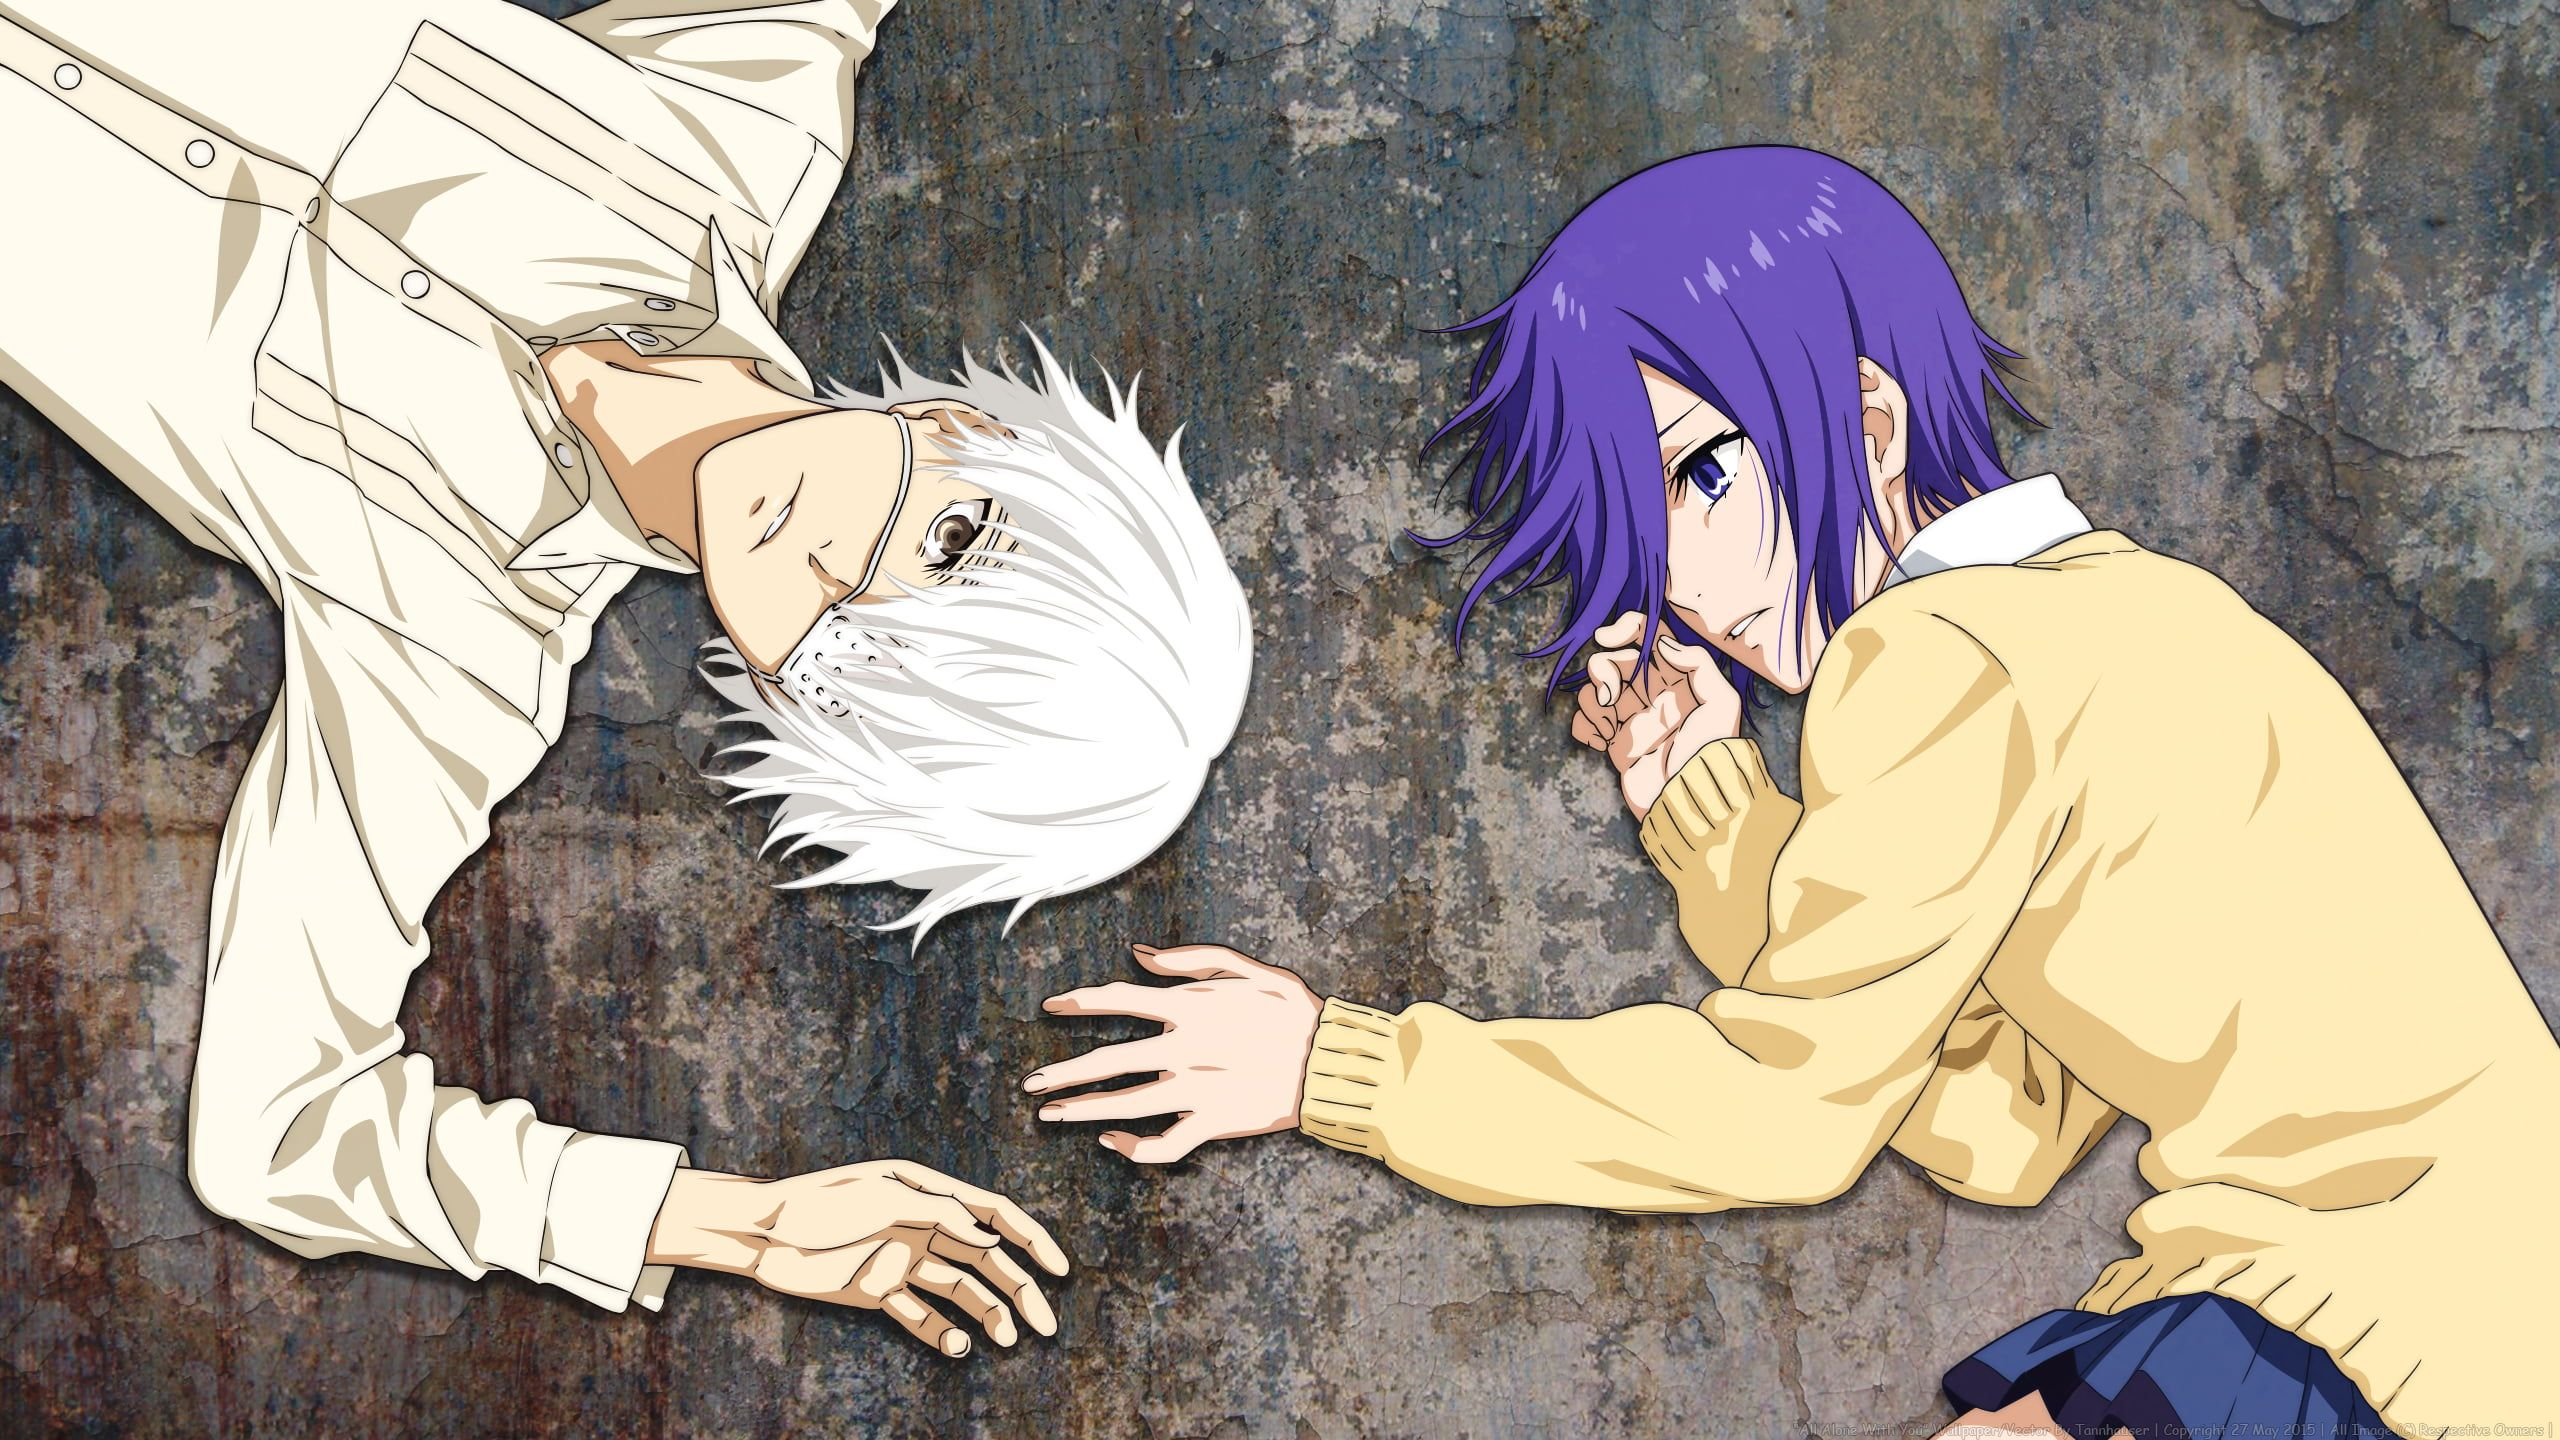 vote now for best couple Tokyo ghoul, Tokyo ghoul